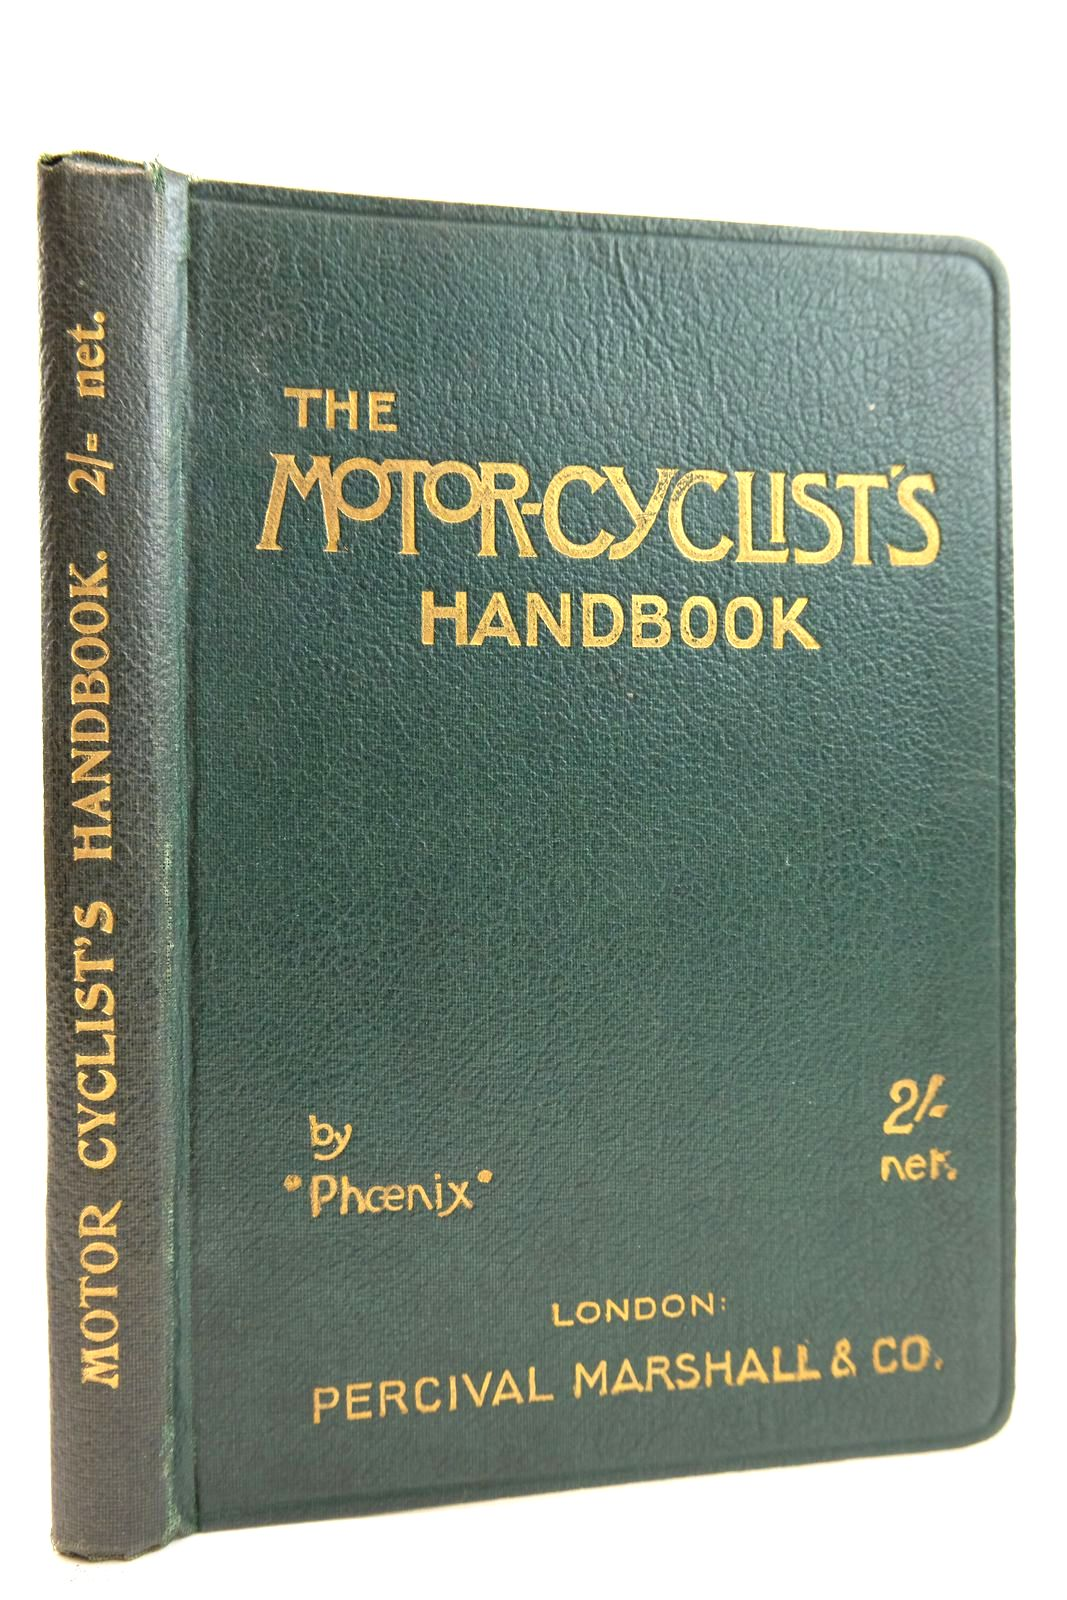 Photo of THE MOTOR CYCLIST'S HANDBOOK- Stock Number: 2132367